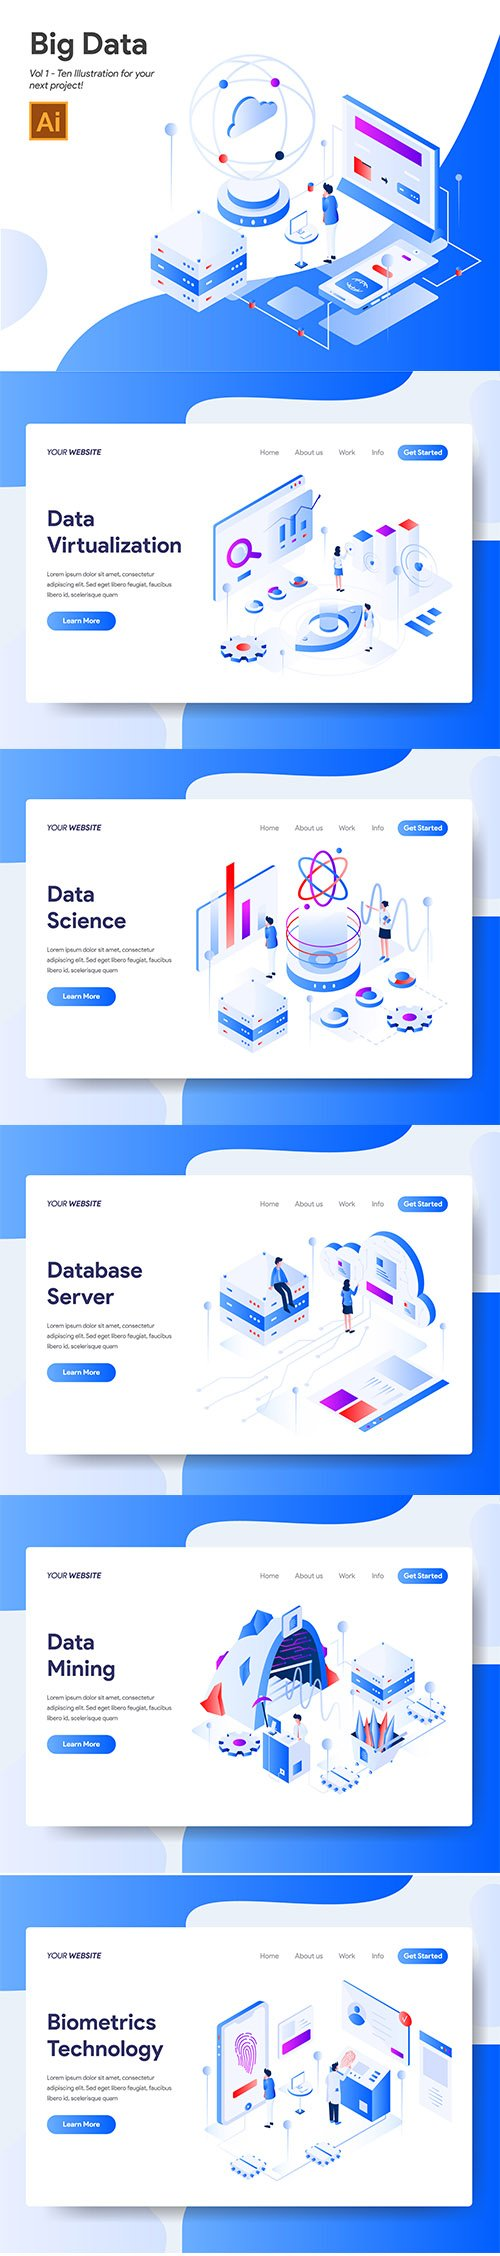 Big Data Vector Illustration Vol 1